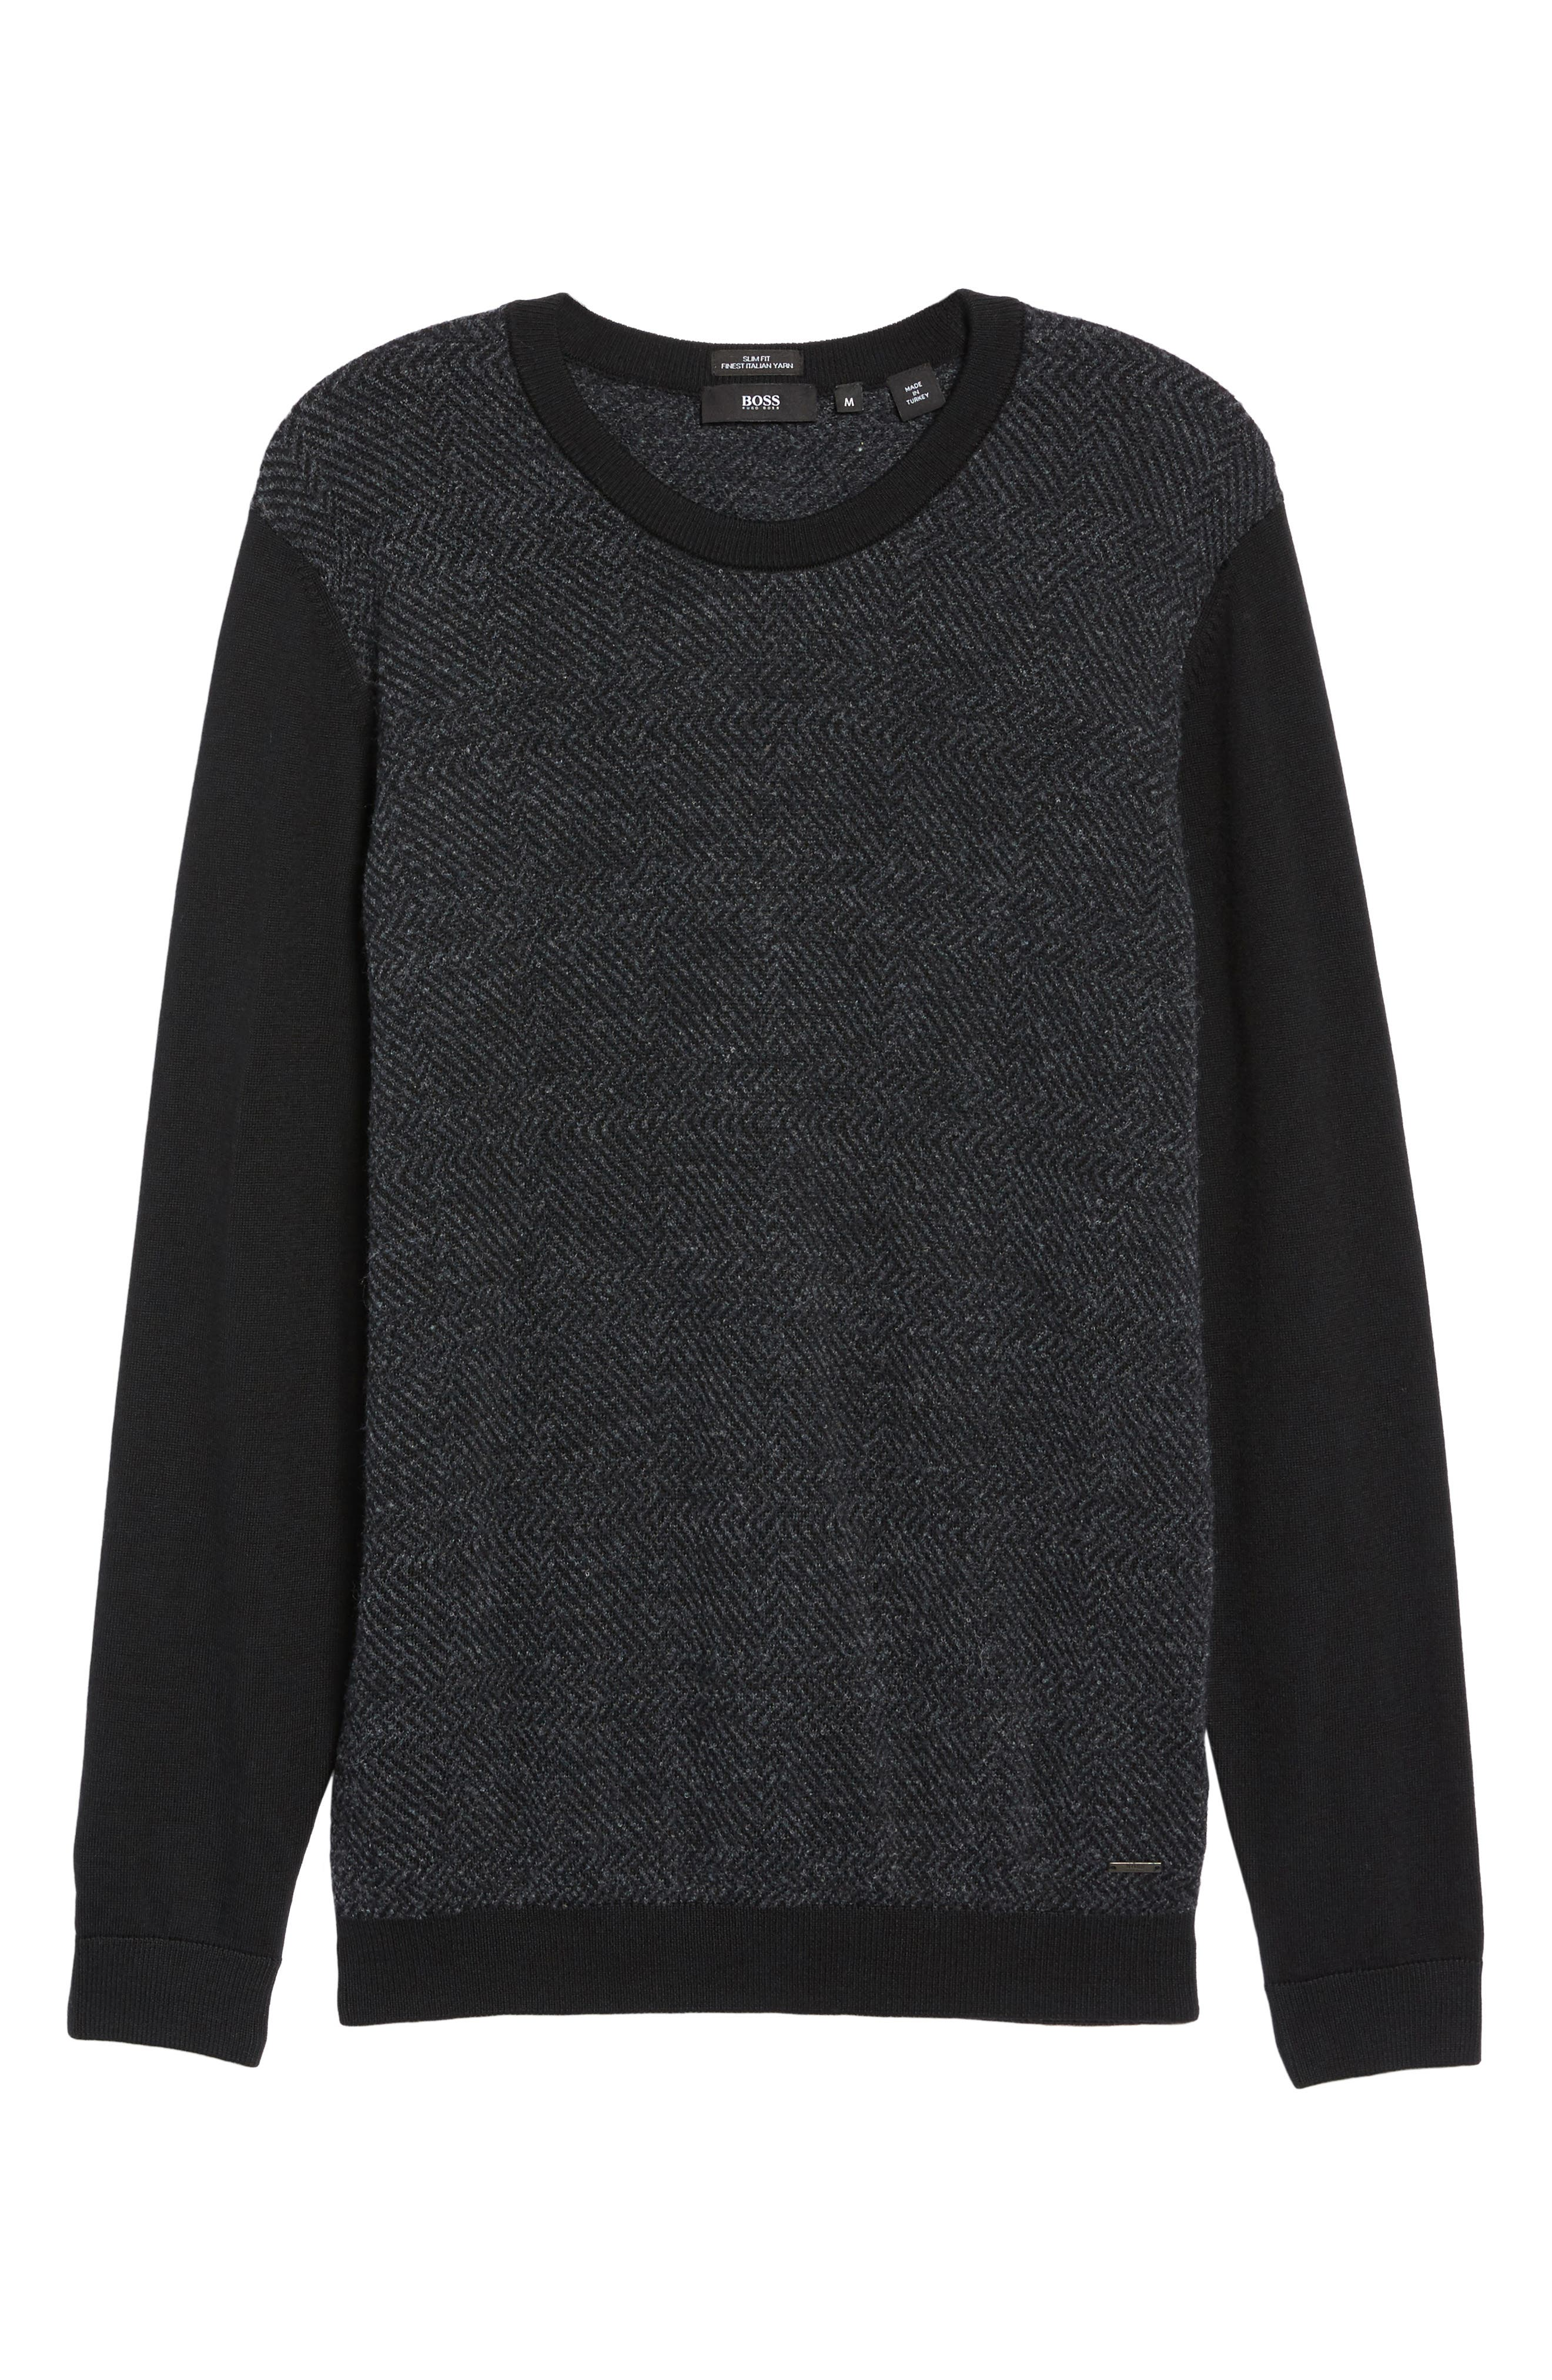 Notto Wool Blend Sweater,                             Alternate thumbnail 5, color,                             Black